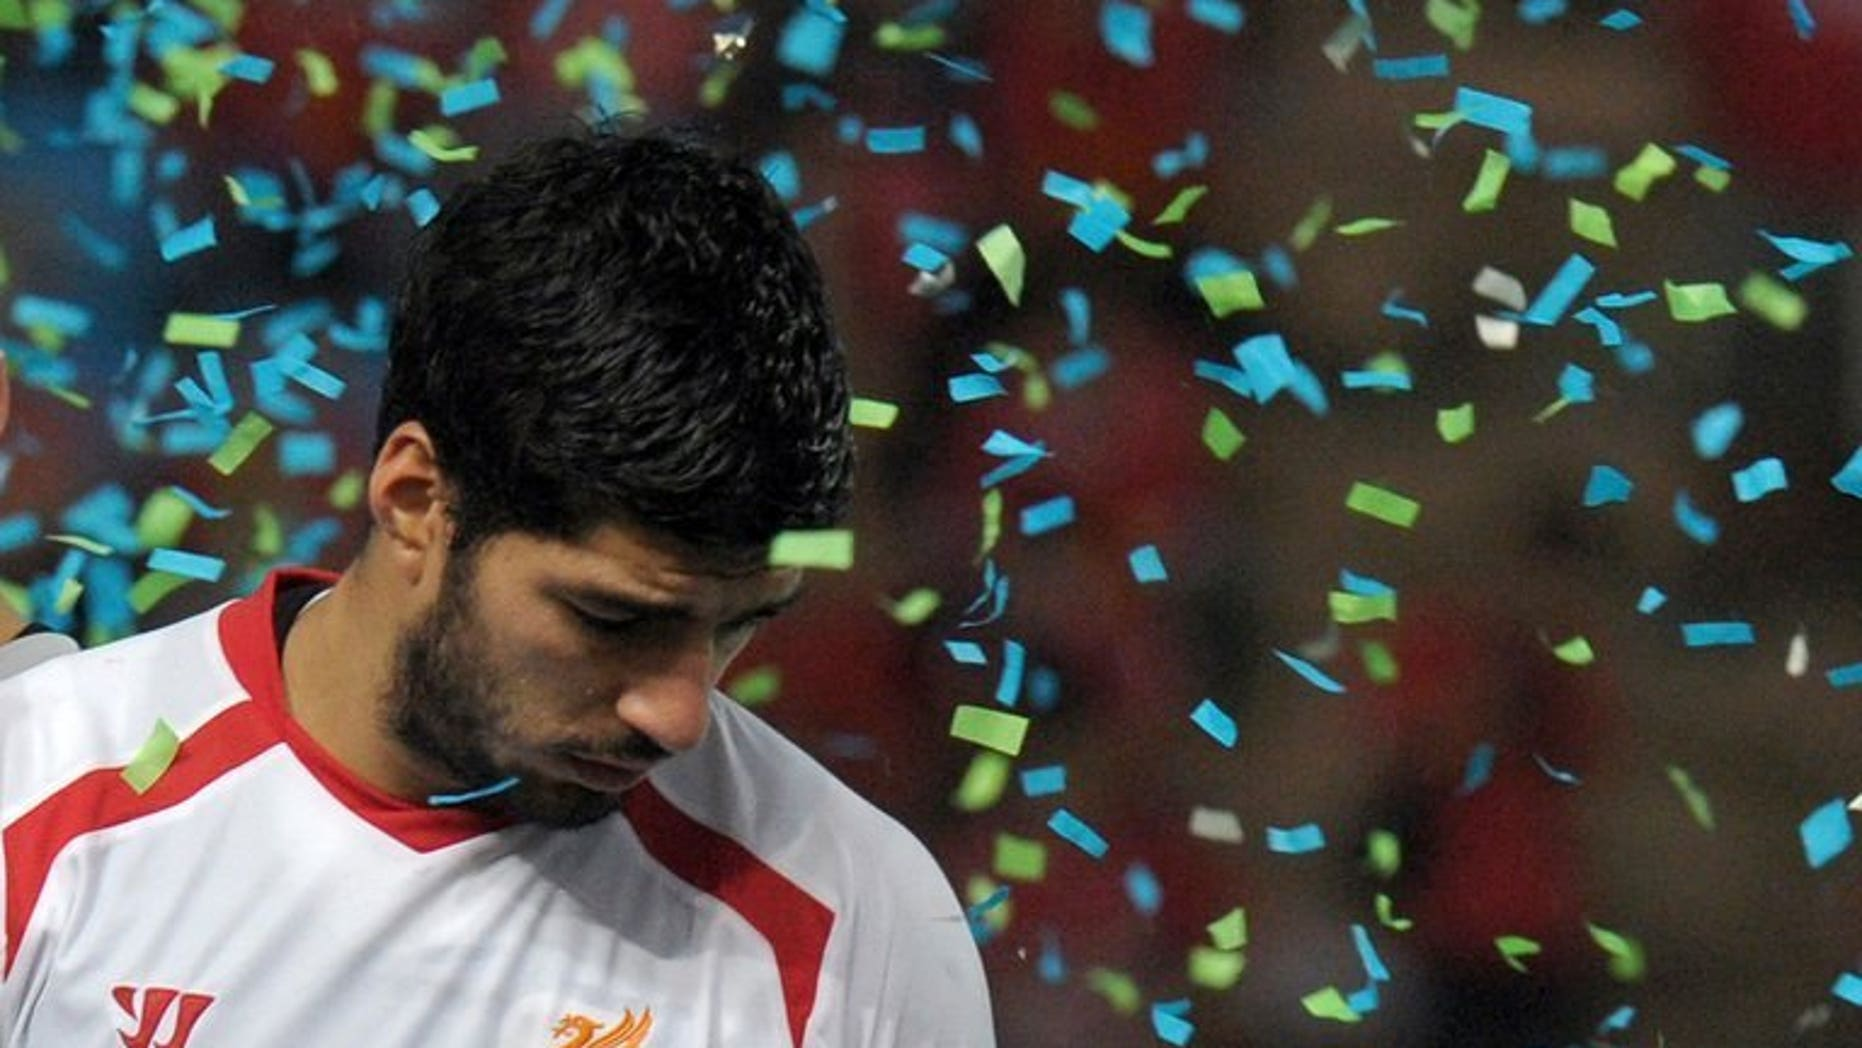 Liverpool football player Luis Suarez reacts after the match against Thailand at Rajamangala National Stadium in Bangkok on July 28, 2013. Suarez has said he will stay at Liverpool, despite being unsettled at the English Premier League side and seeking a transfer, El Observador newspaper said on Wednesday.